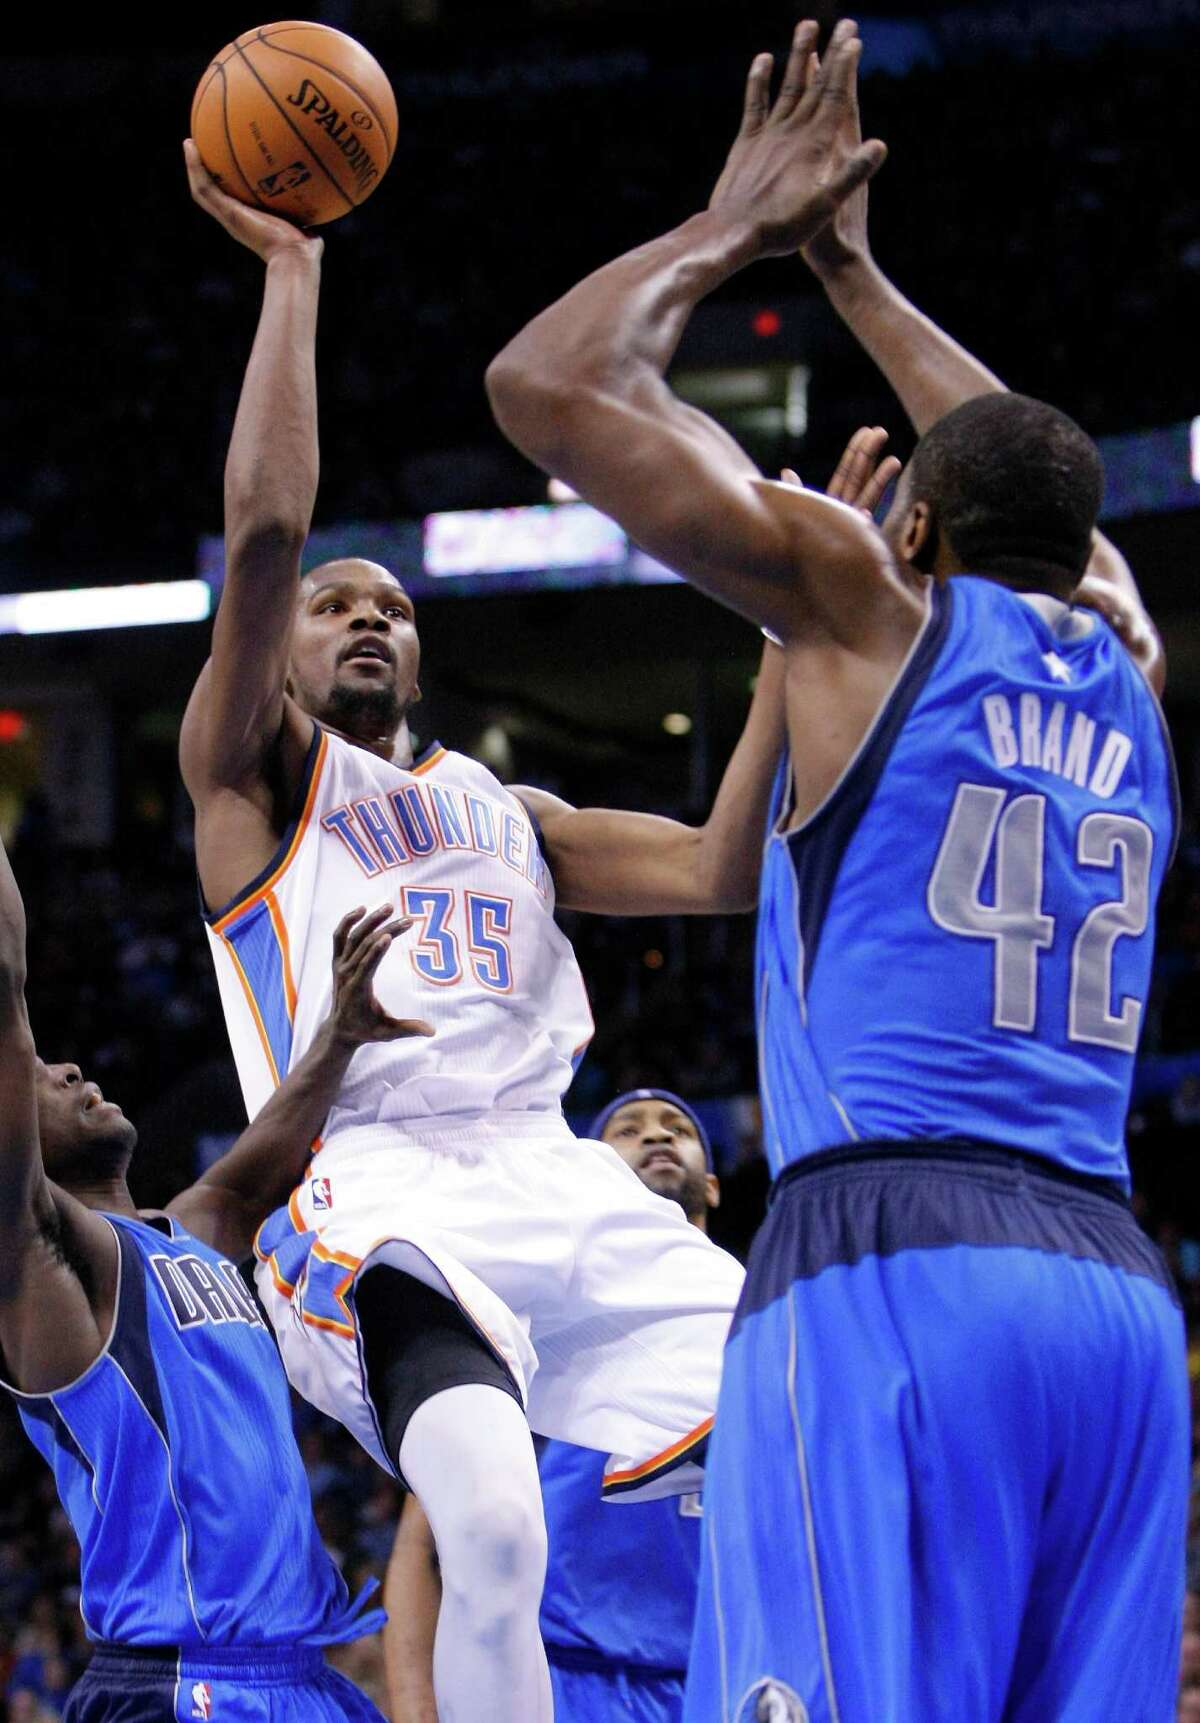 Oklahoma City Thunder forward Kevin Durant, center, goes up for a basket in front of Dallas Mavericks' Elton Brand during the second half of an NBA basketball game in Oklahoma City, Thursday, Dec. 27, 2012. Oklahoma City won 111-105. (AP Photo/Alonzo Adams)